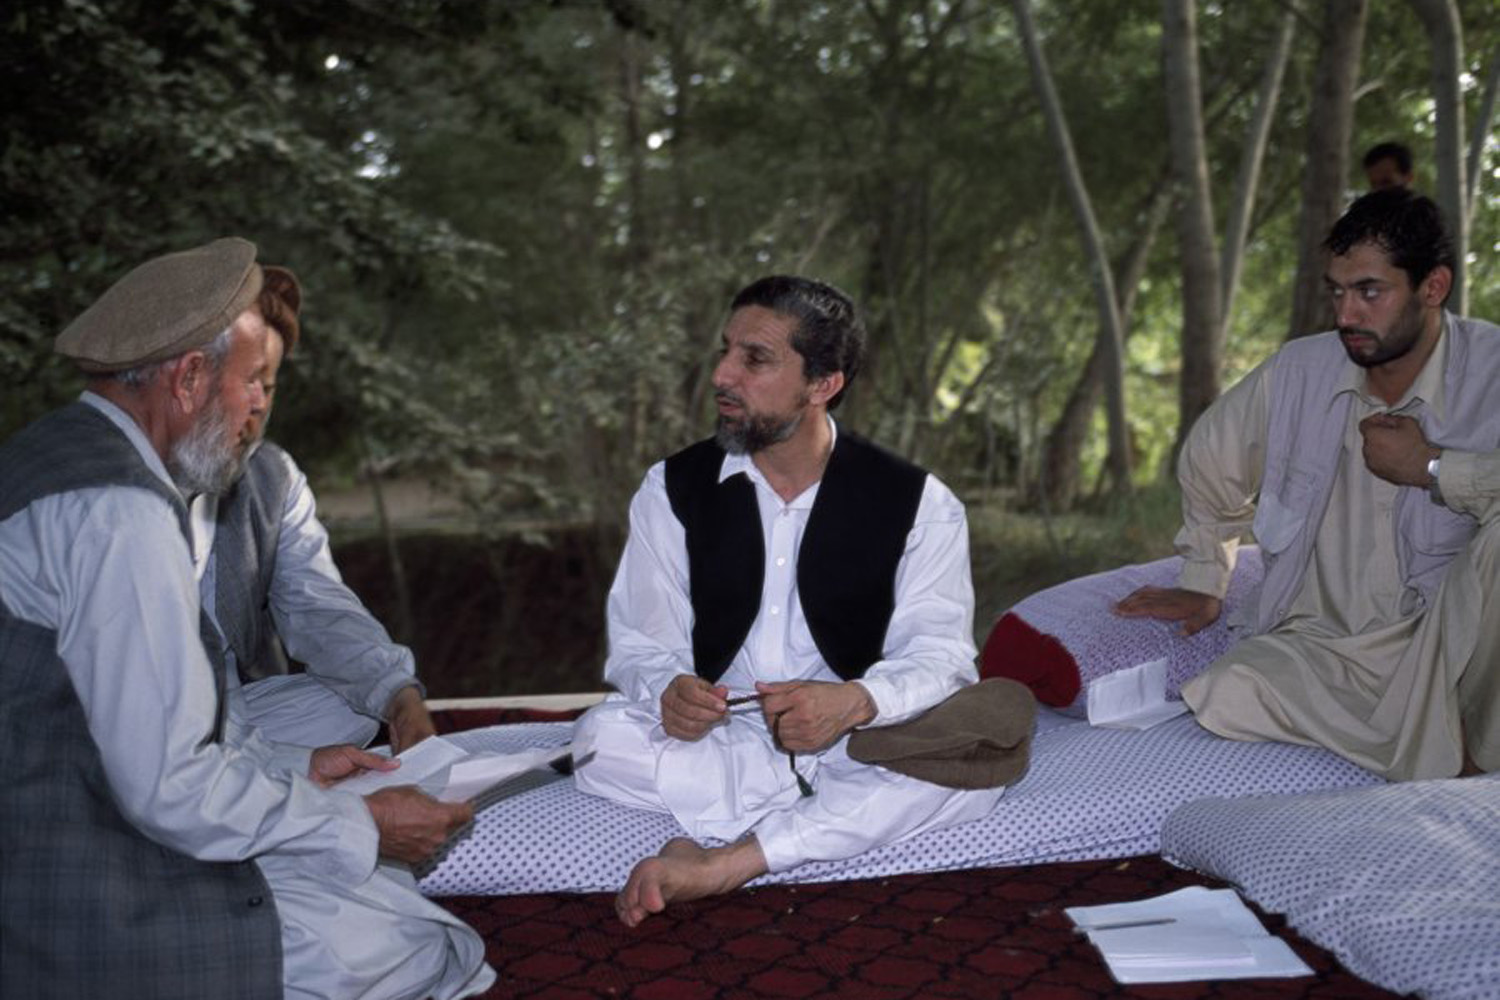 Afghan opposition leader Ahmed Shah Massoud (center) meets with his advisors at one of his headquarters in Khwaja Bahauddin, Badakhshan Province, Afghanistan. June 2001